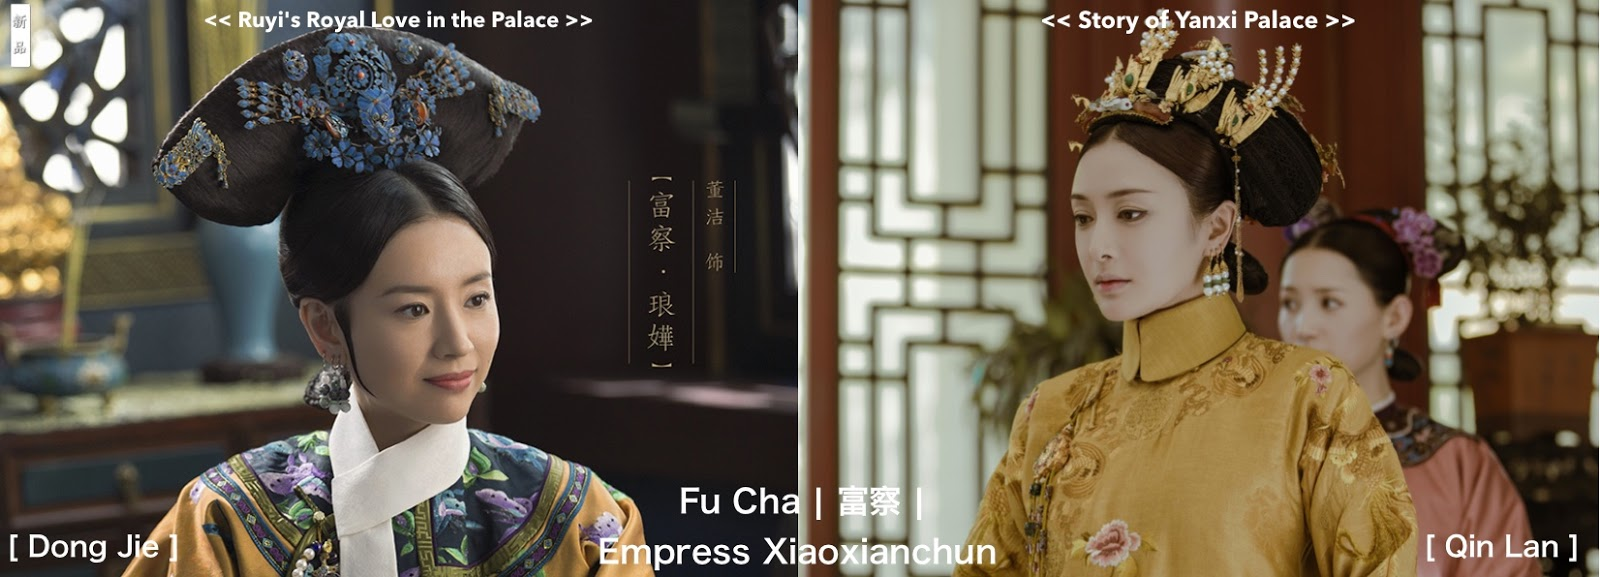 Ruyi Versus Yanxi and the Character Relationships Between